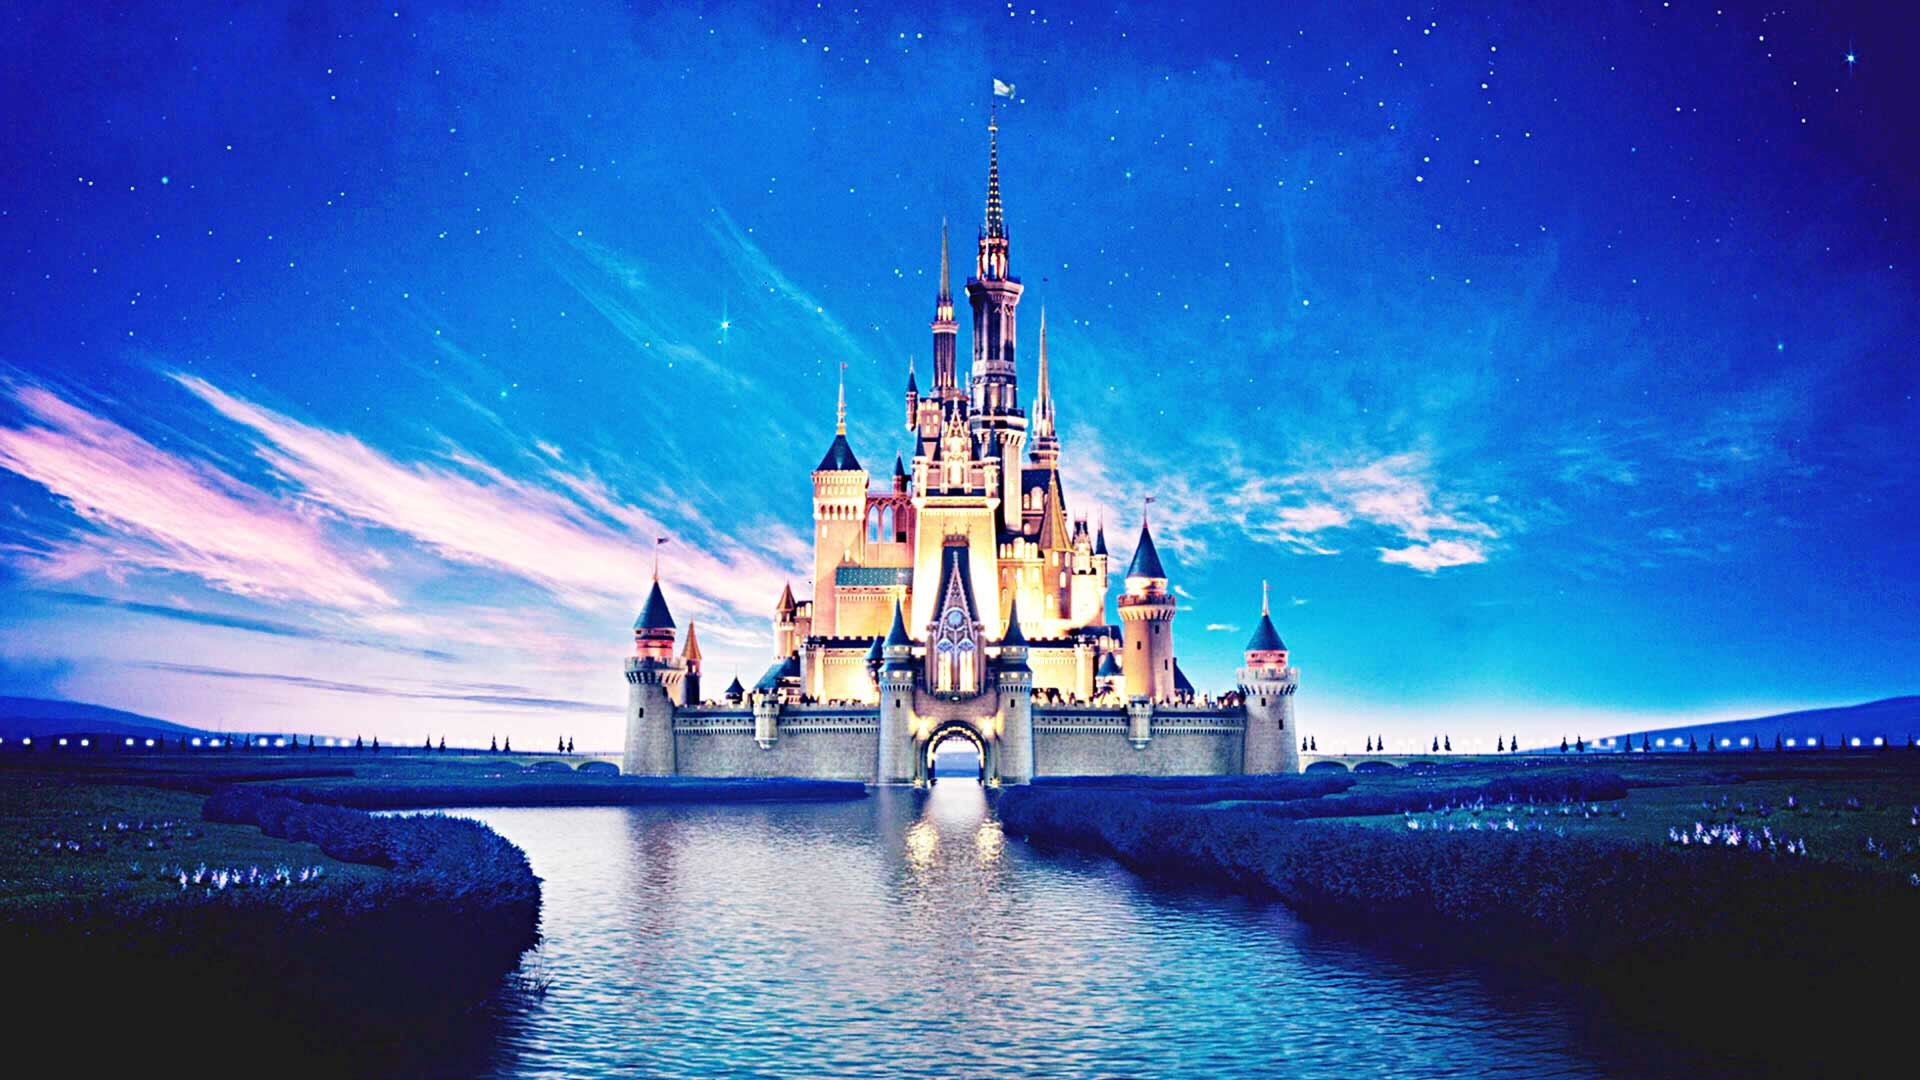 Disney wallpaper for computer 56 images - Wallpapers pc ...